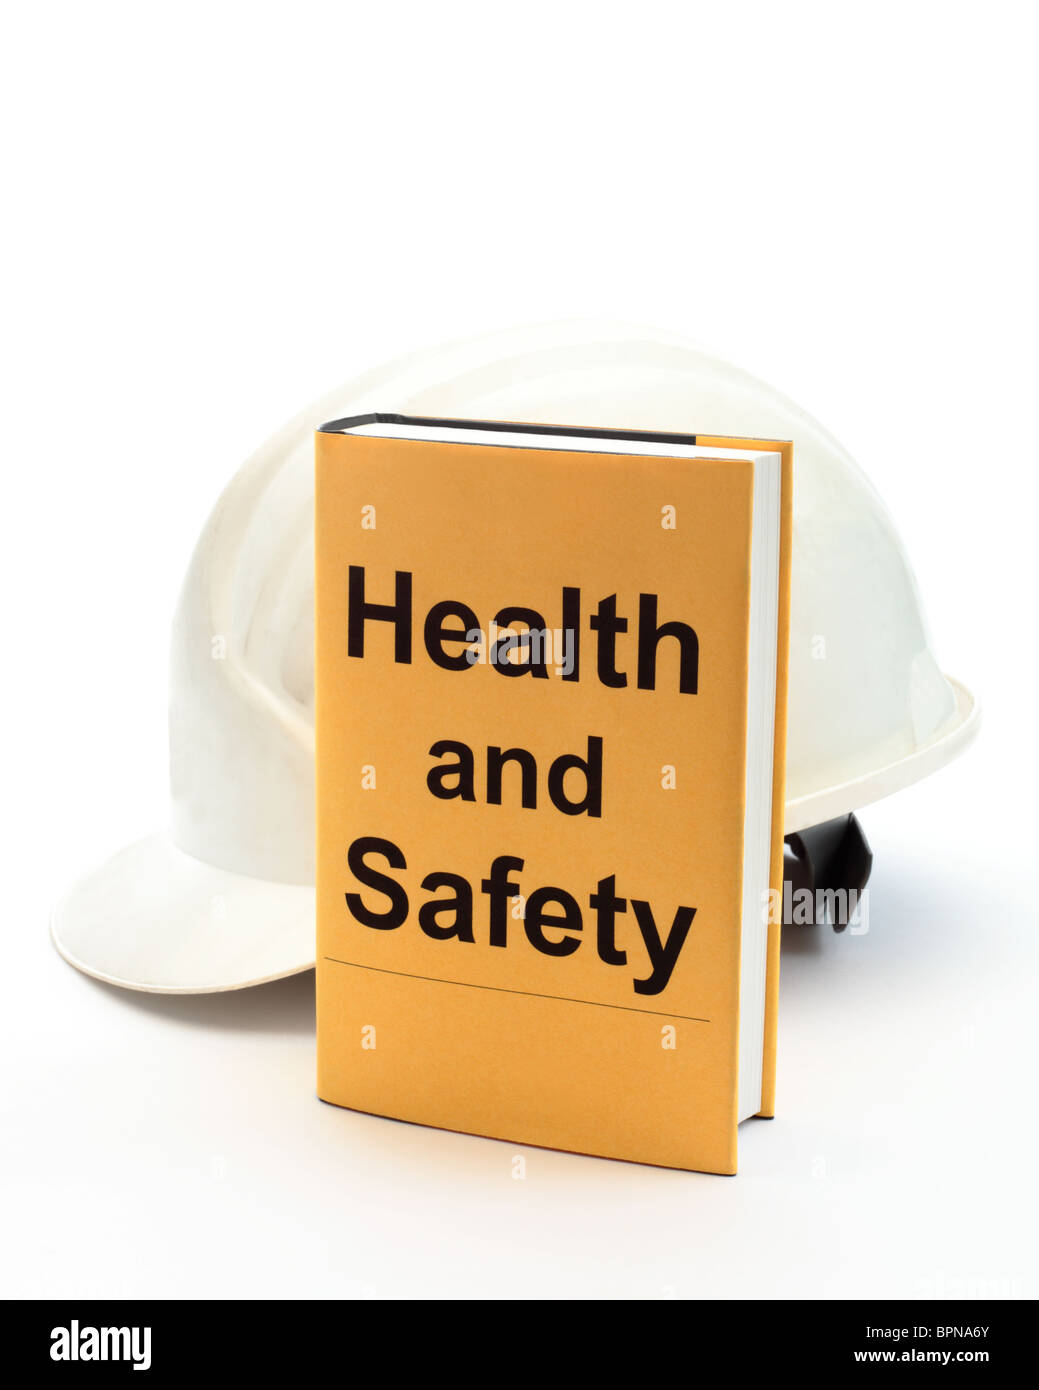 Book with words 'health and safety' on cover with safety helmet behind - Stock Image